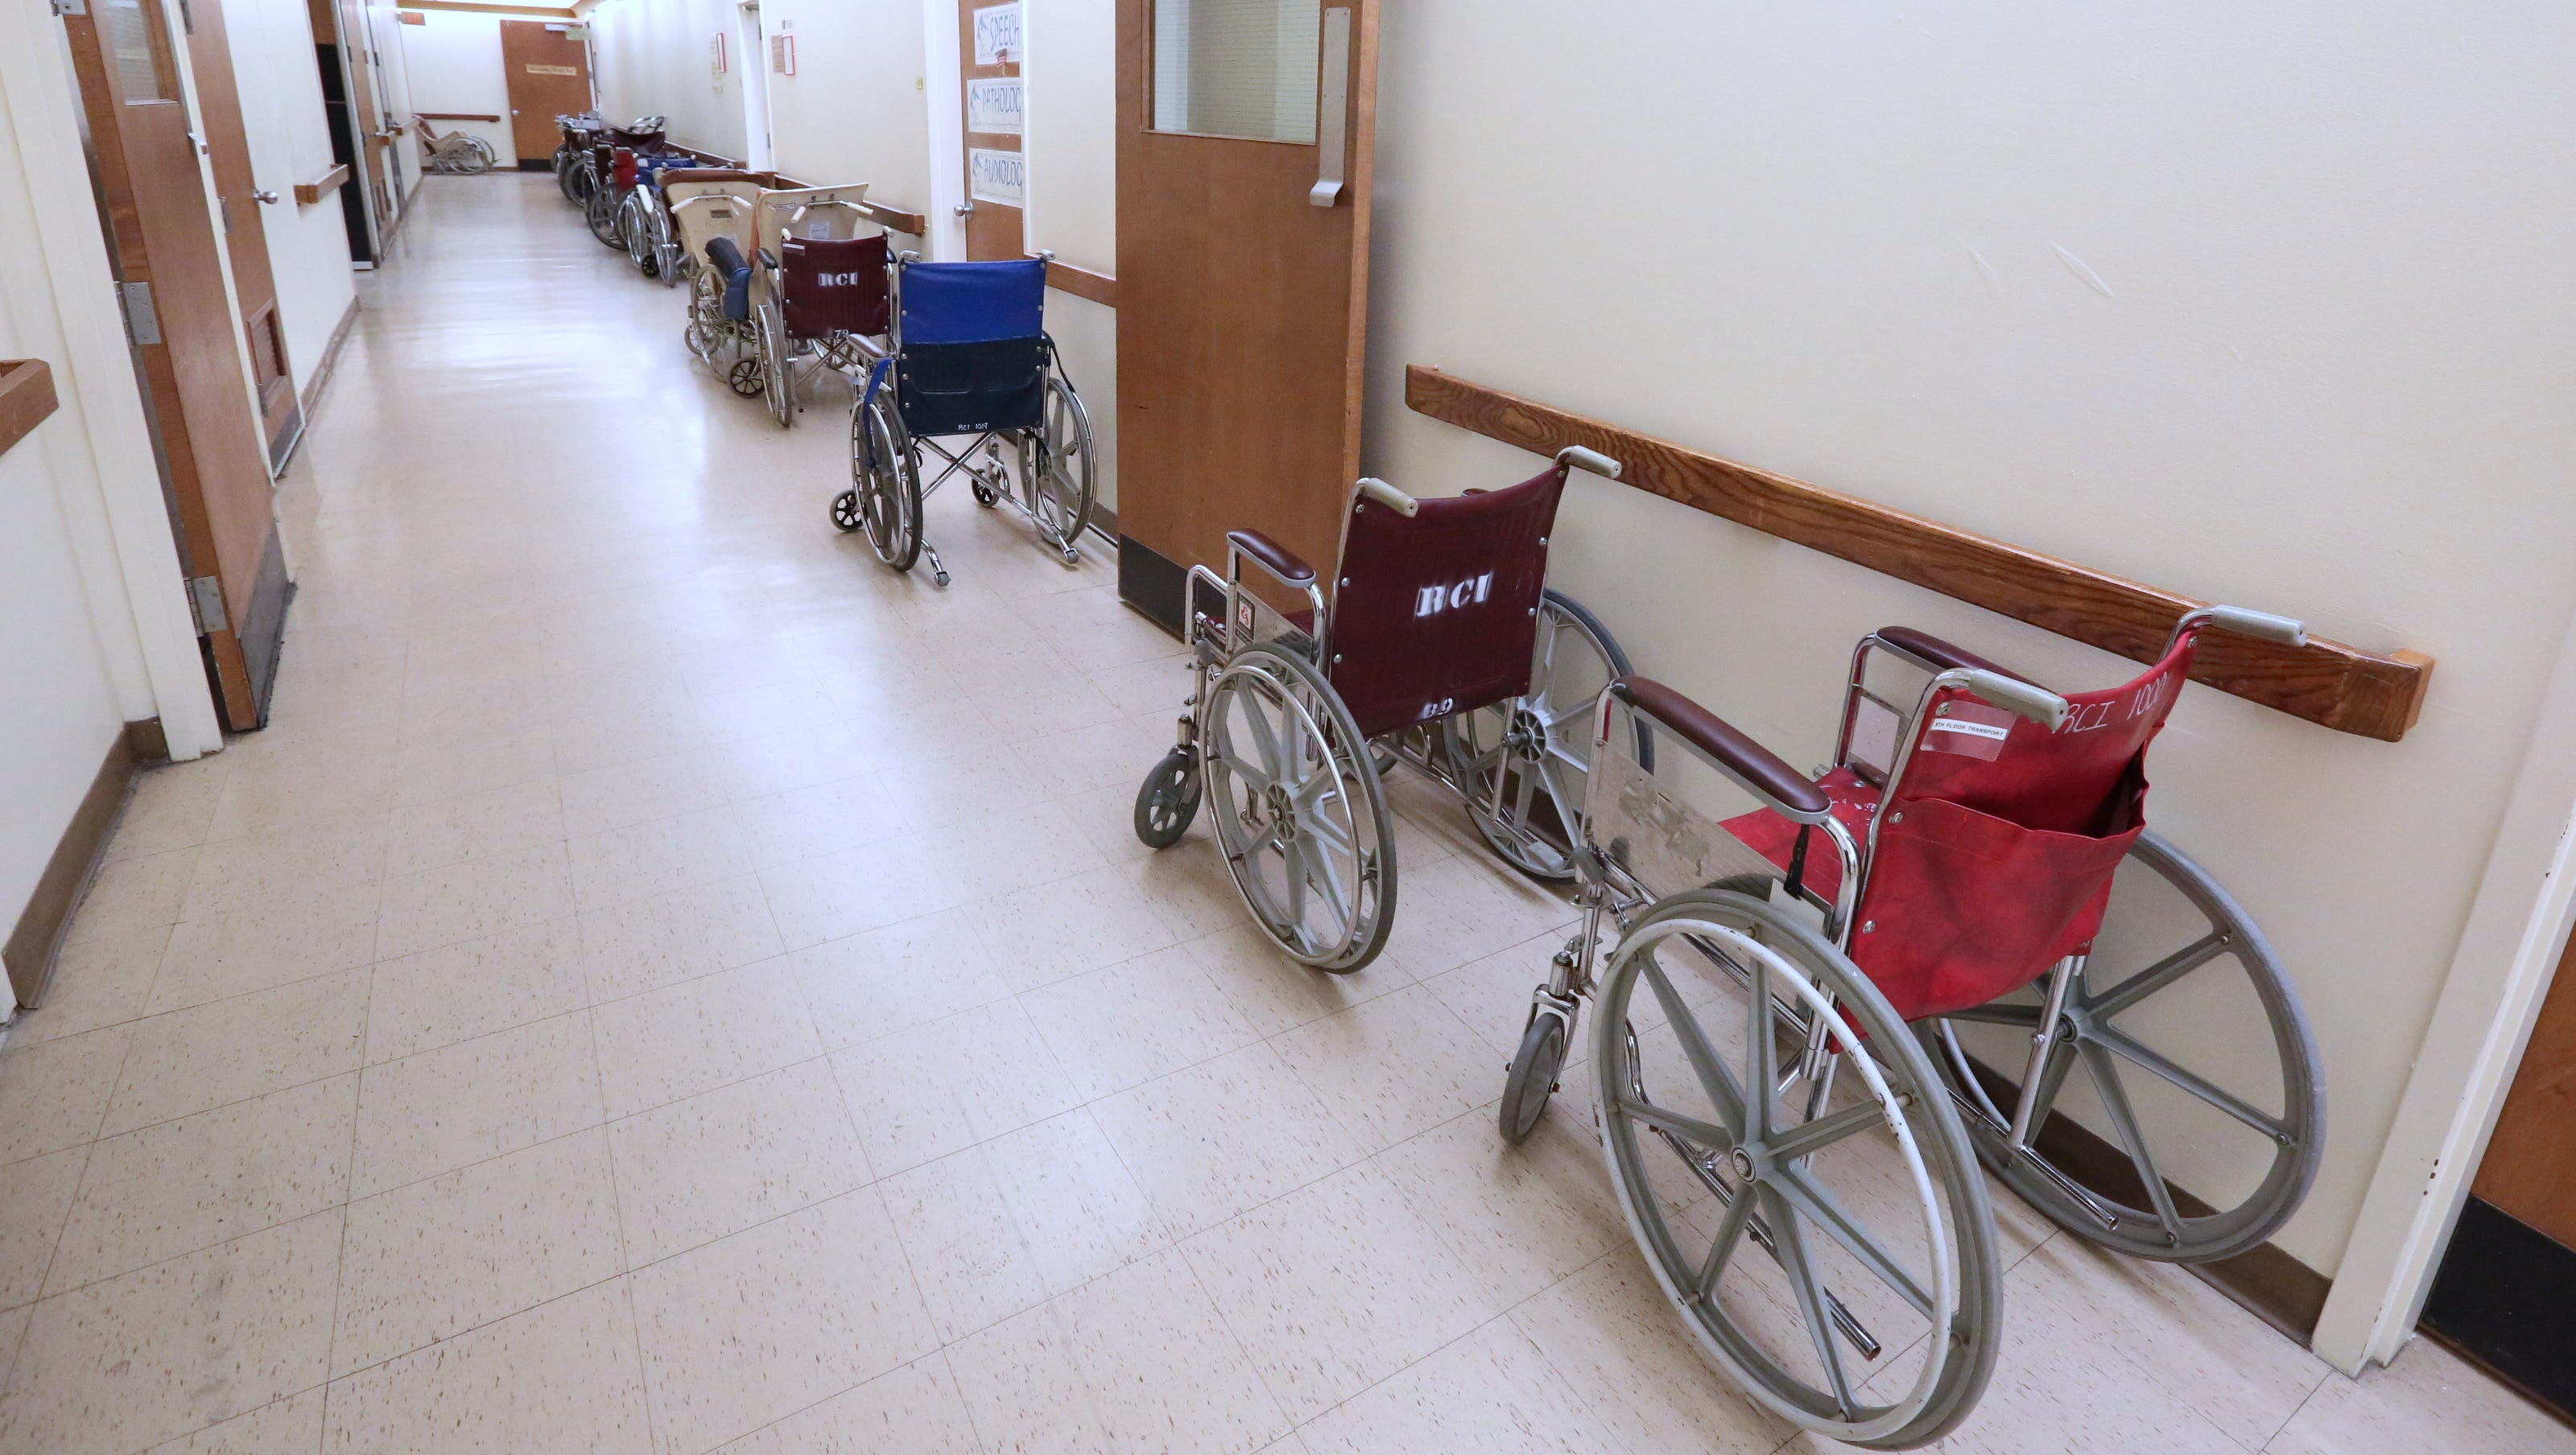 How safe are Rockland County nursing homes See inspection data here